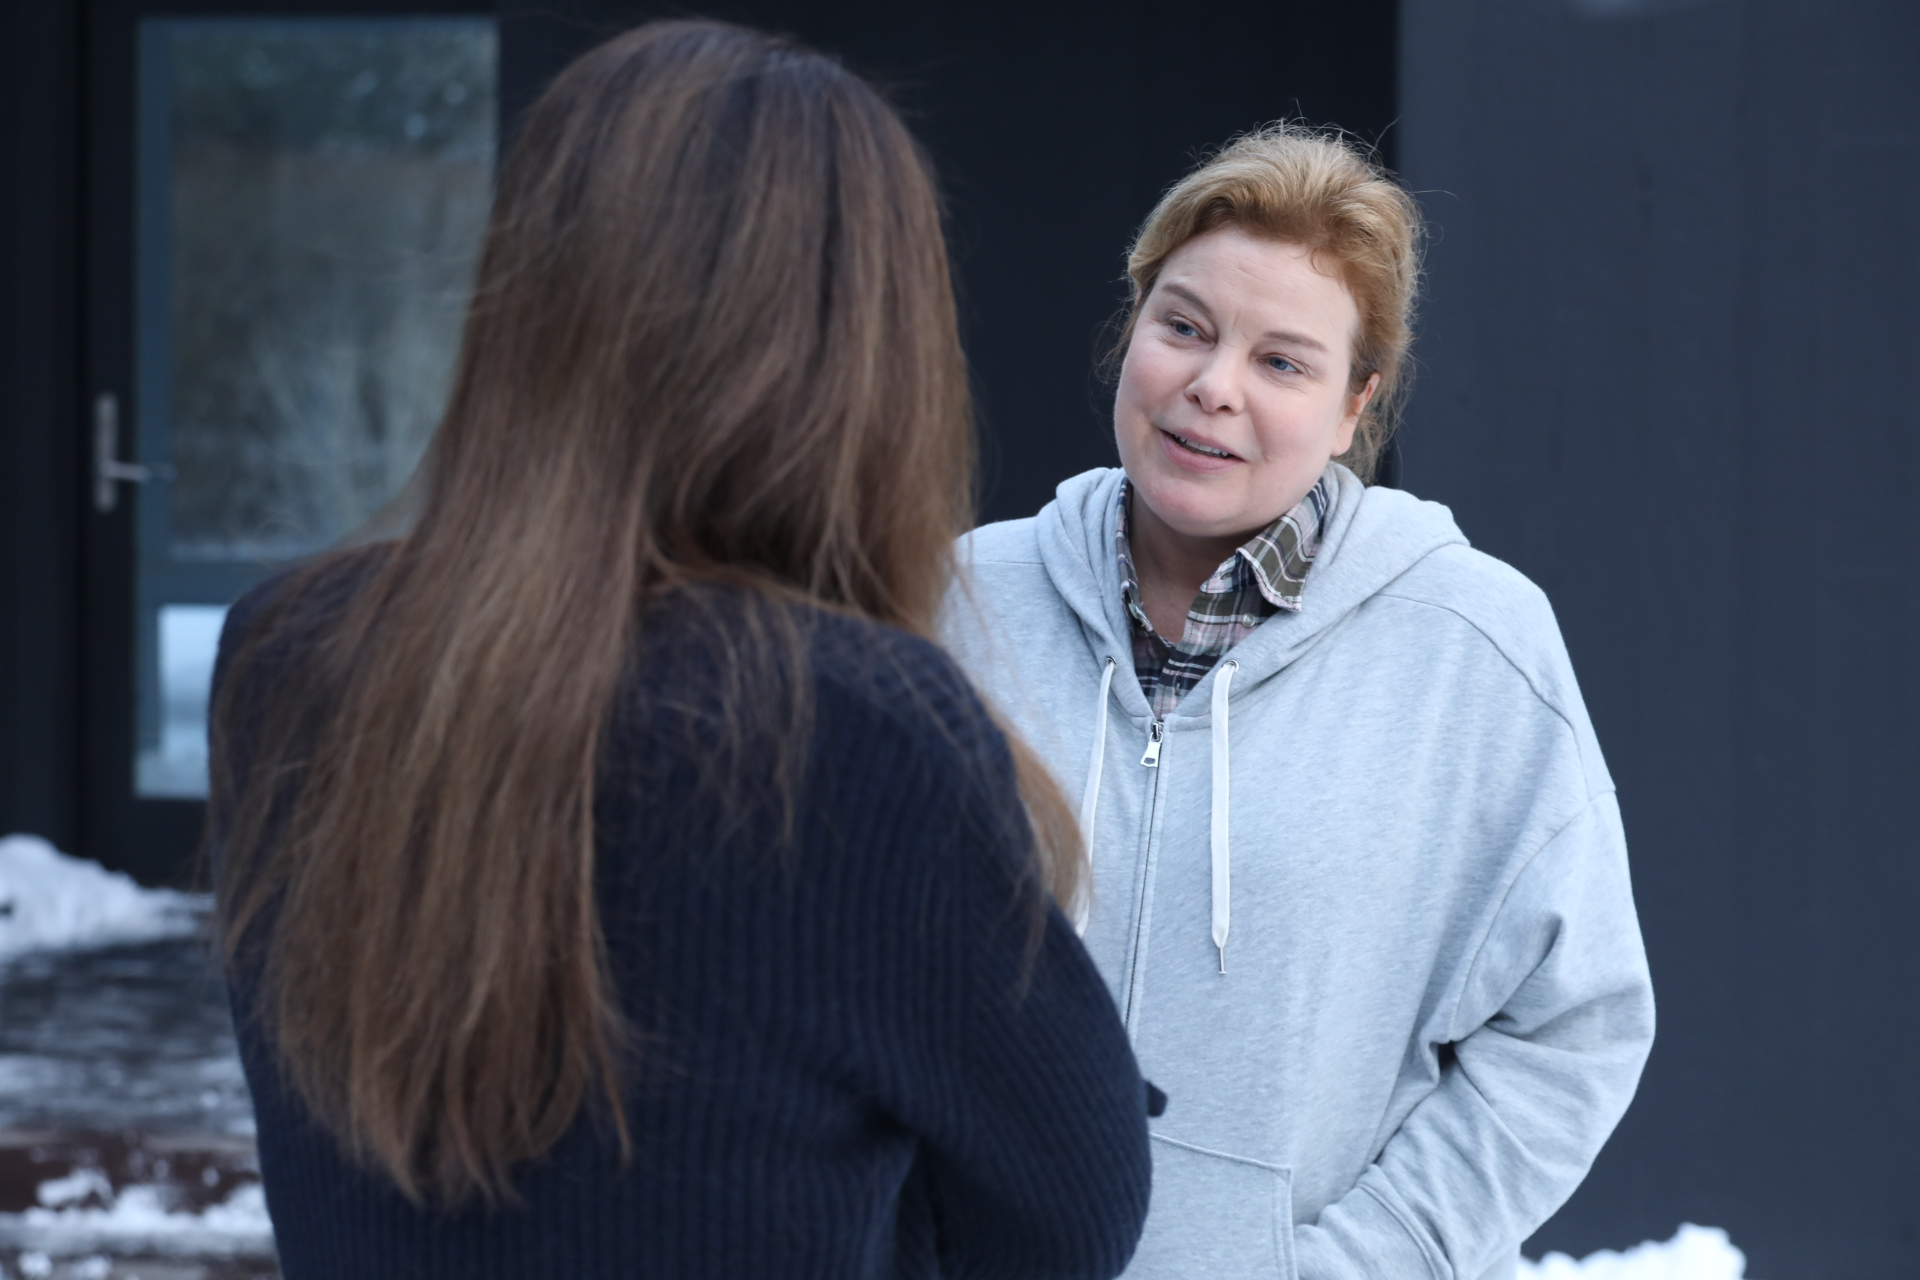 Joyce (Catherine Curtin) offers some earnest advice to Claire (Lena Olin) in THE ARTIST'S WIFE. Photo by Michael Lavine